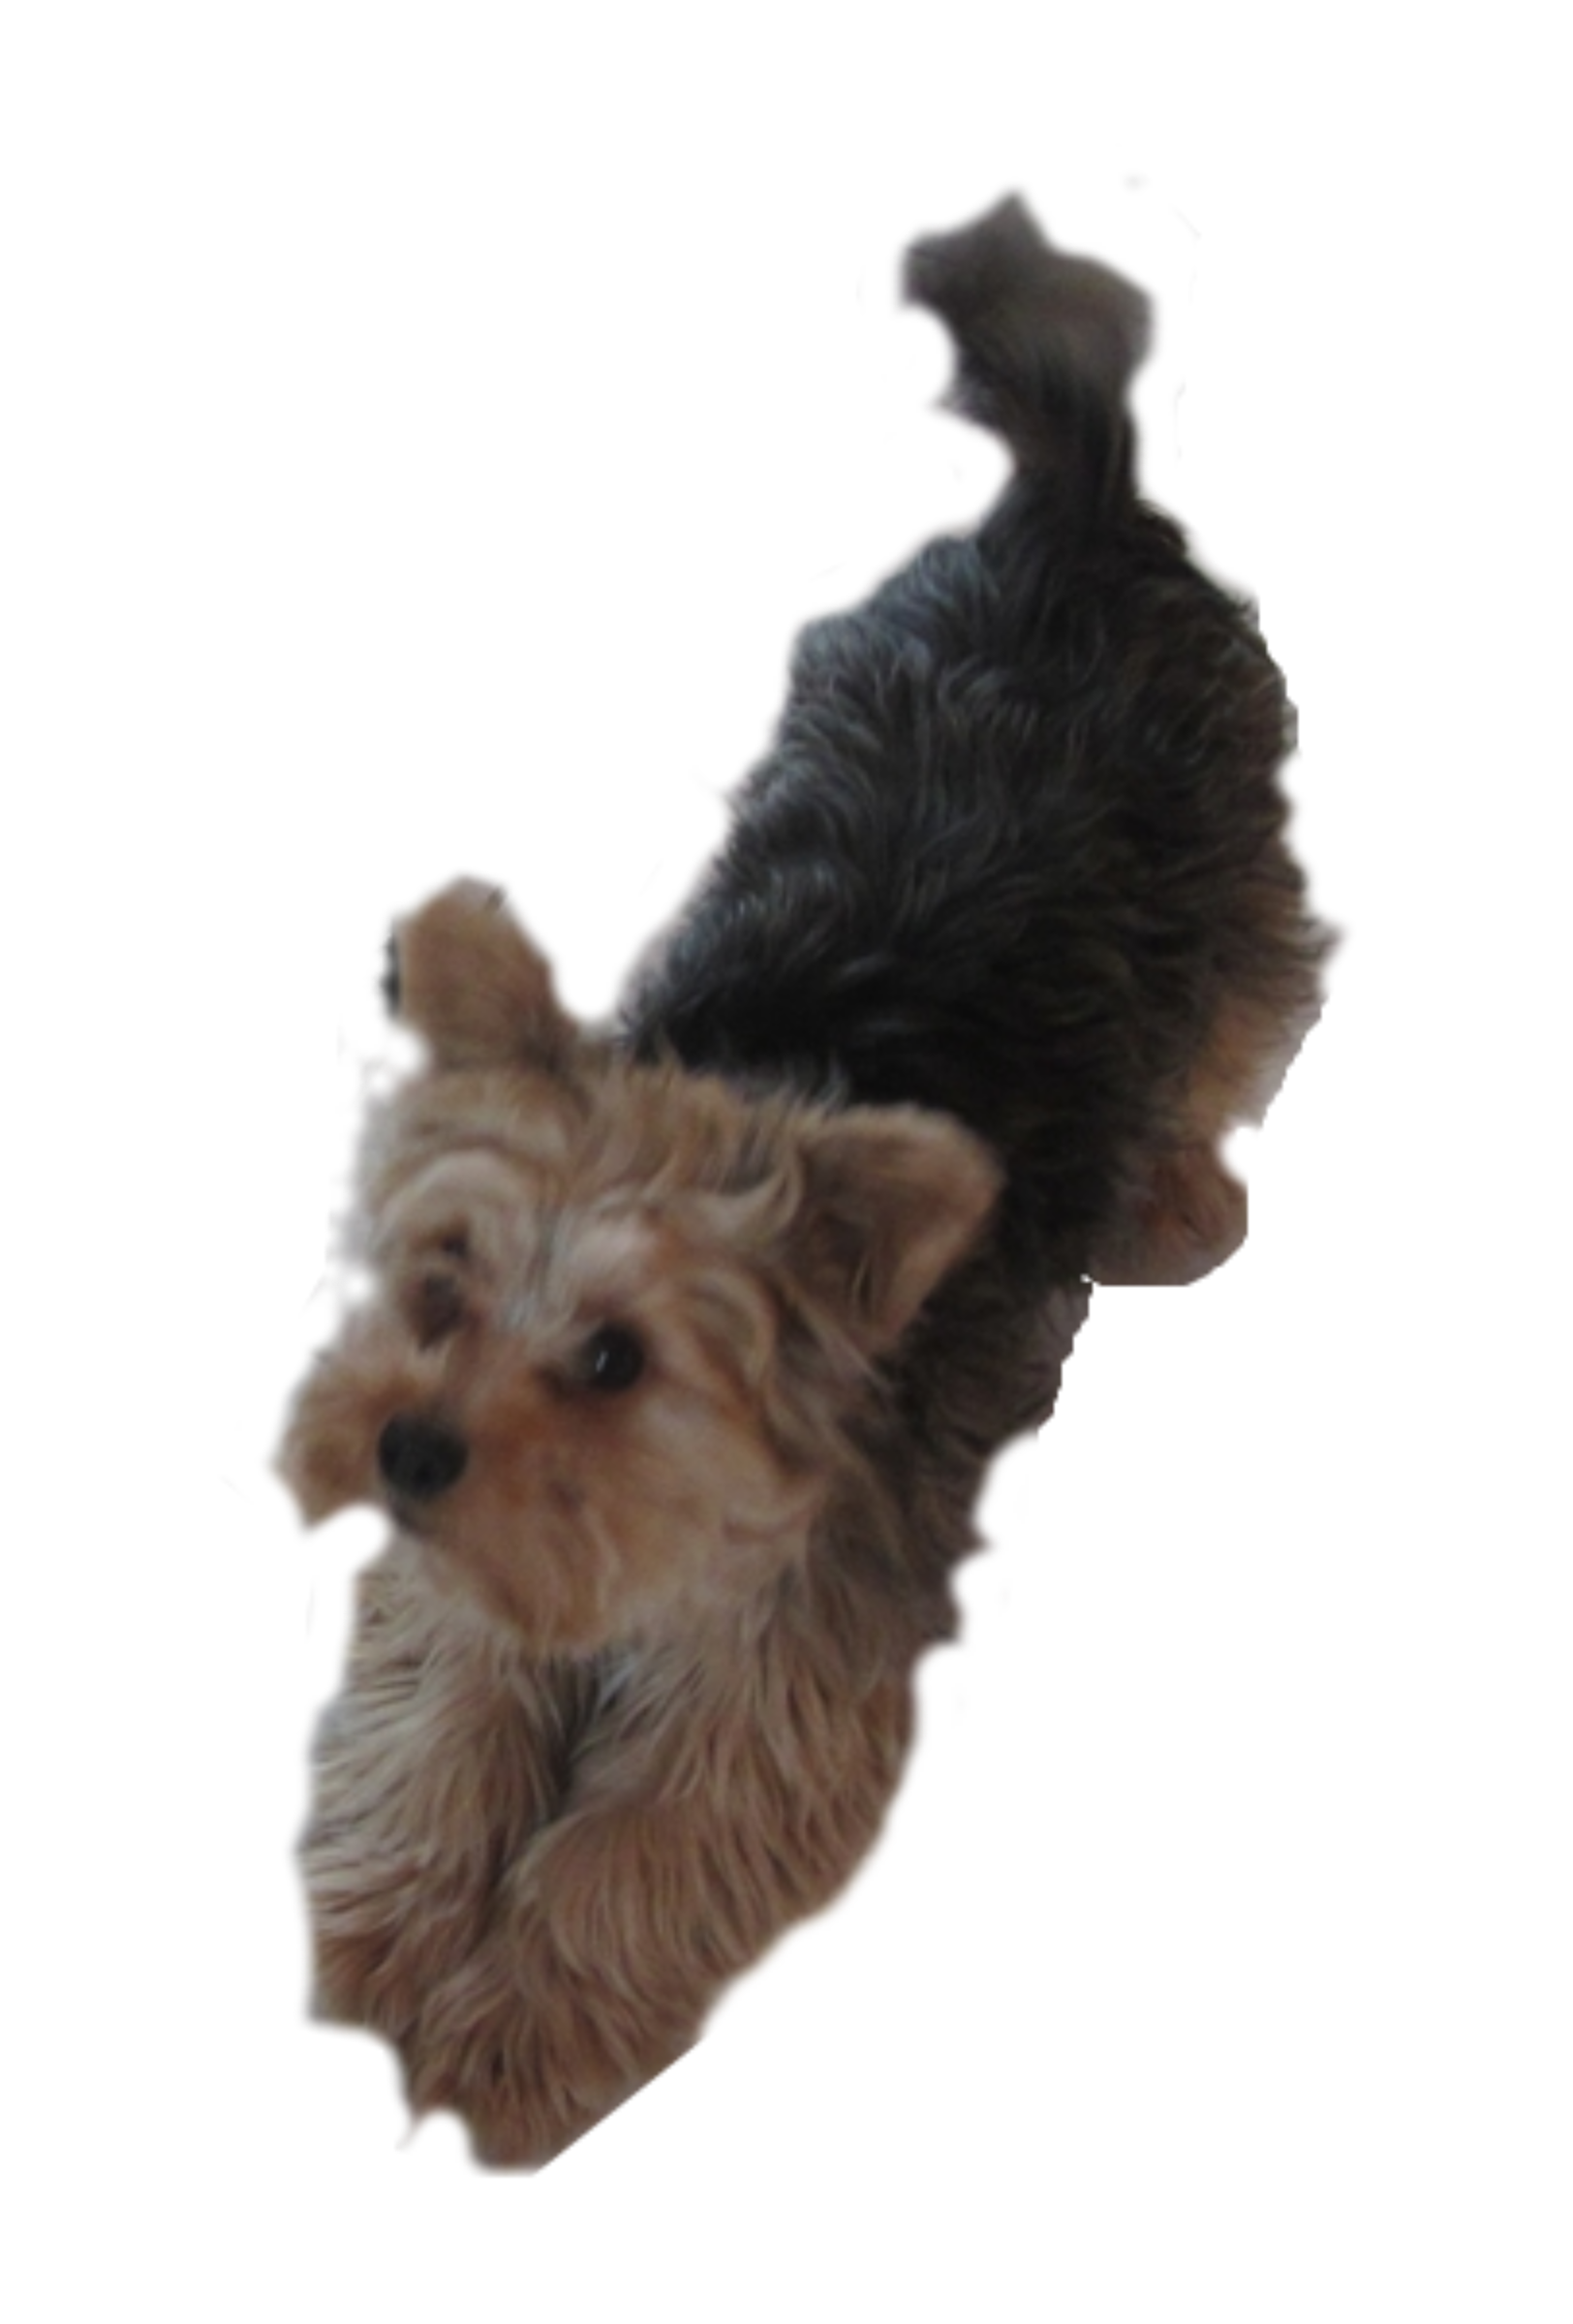 Pleading big image png. Dog clipart yorkie